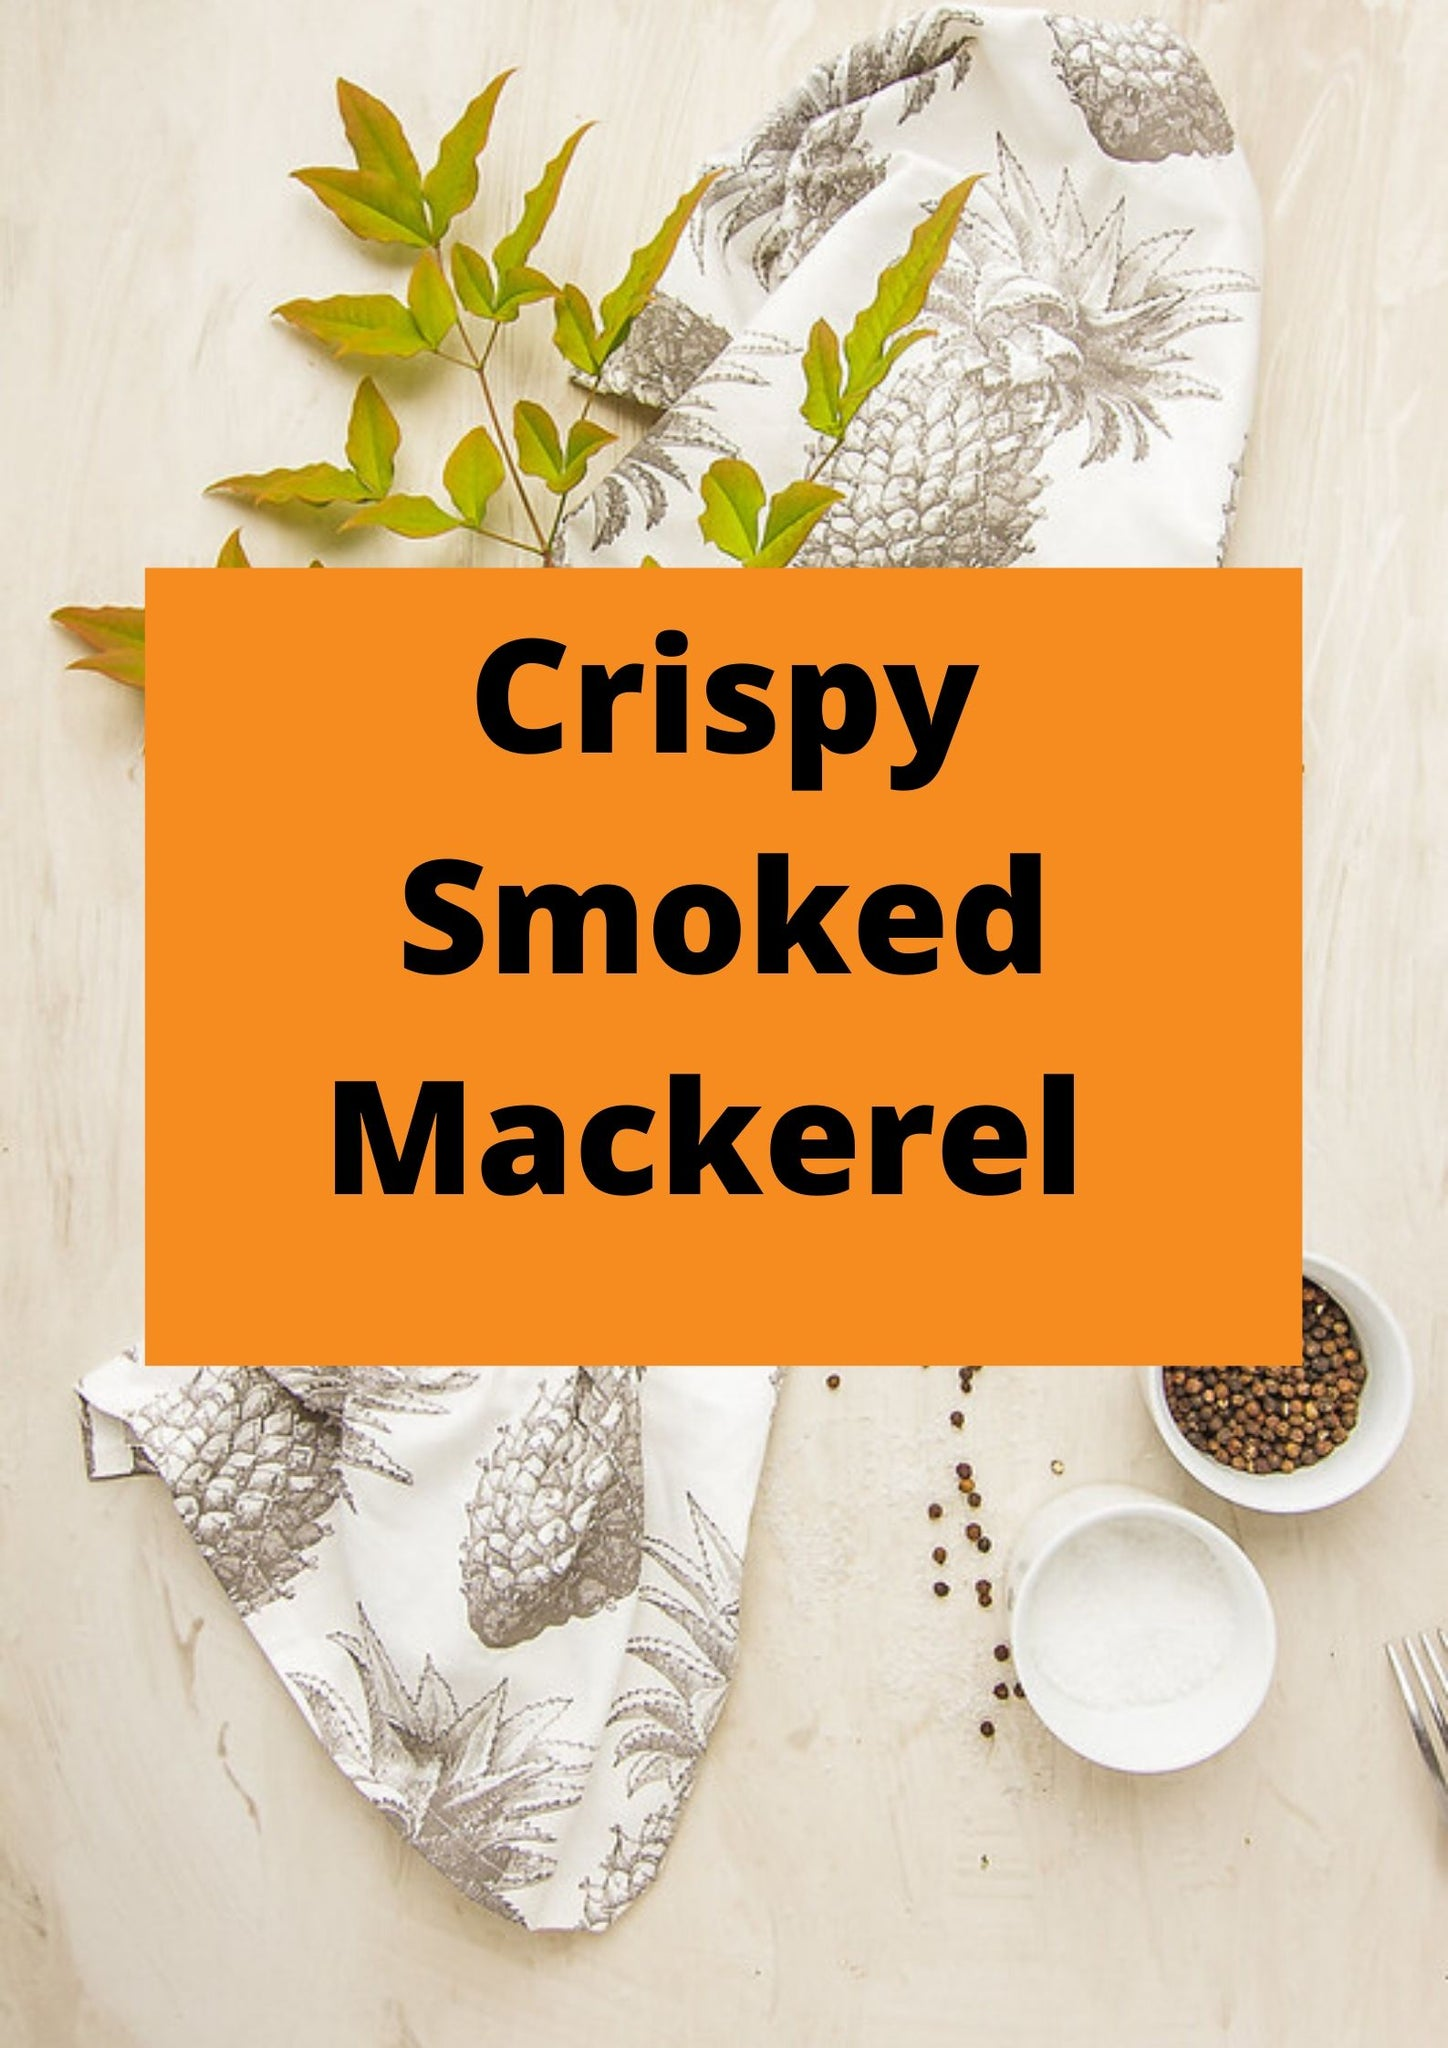 Crispy Smoked Mackerel